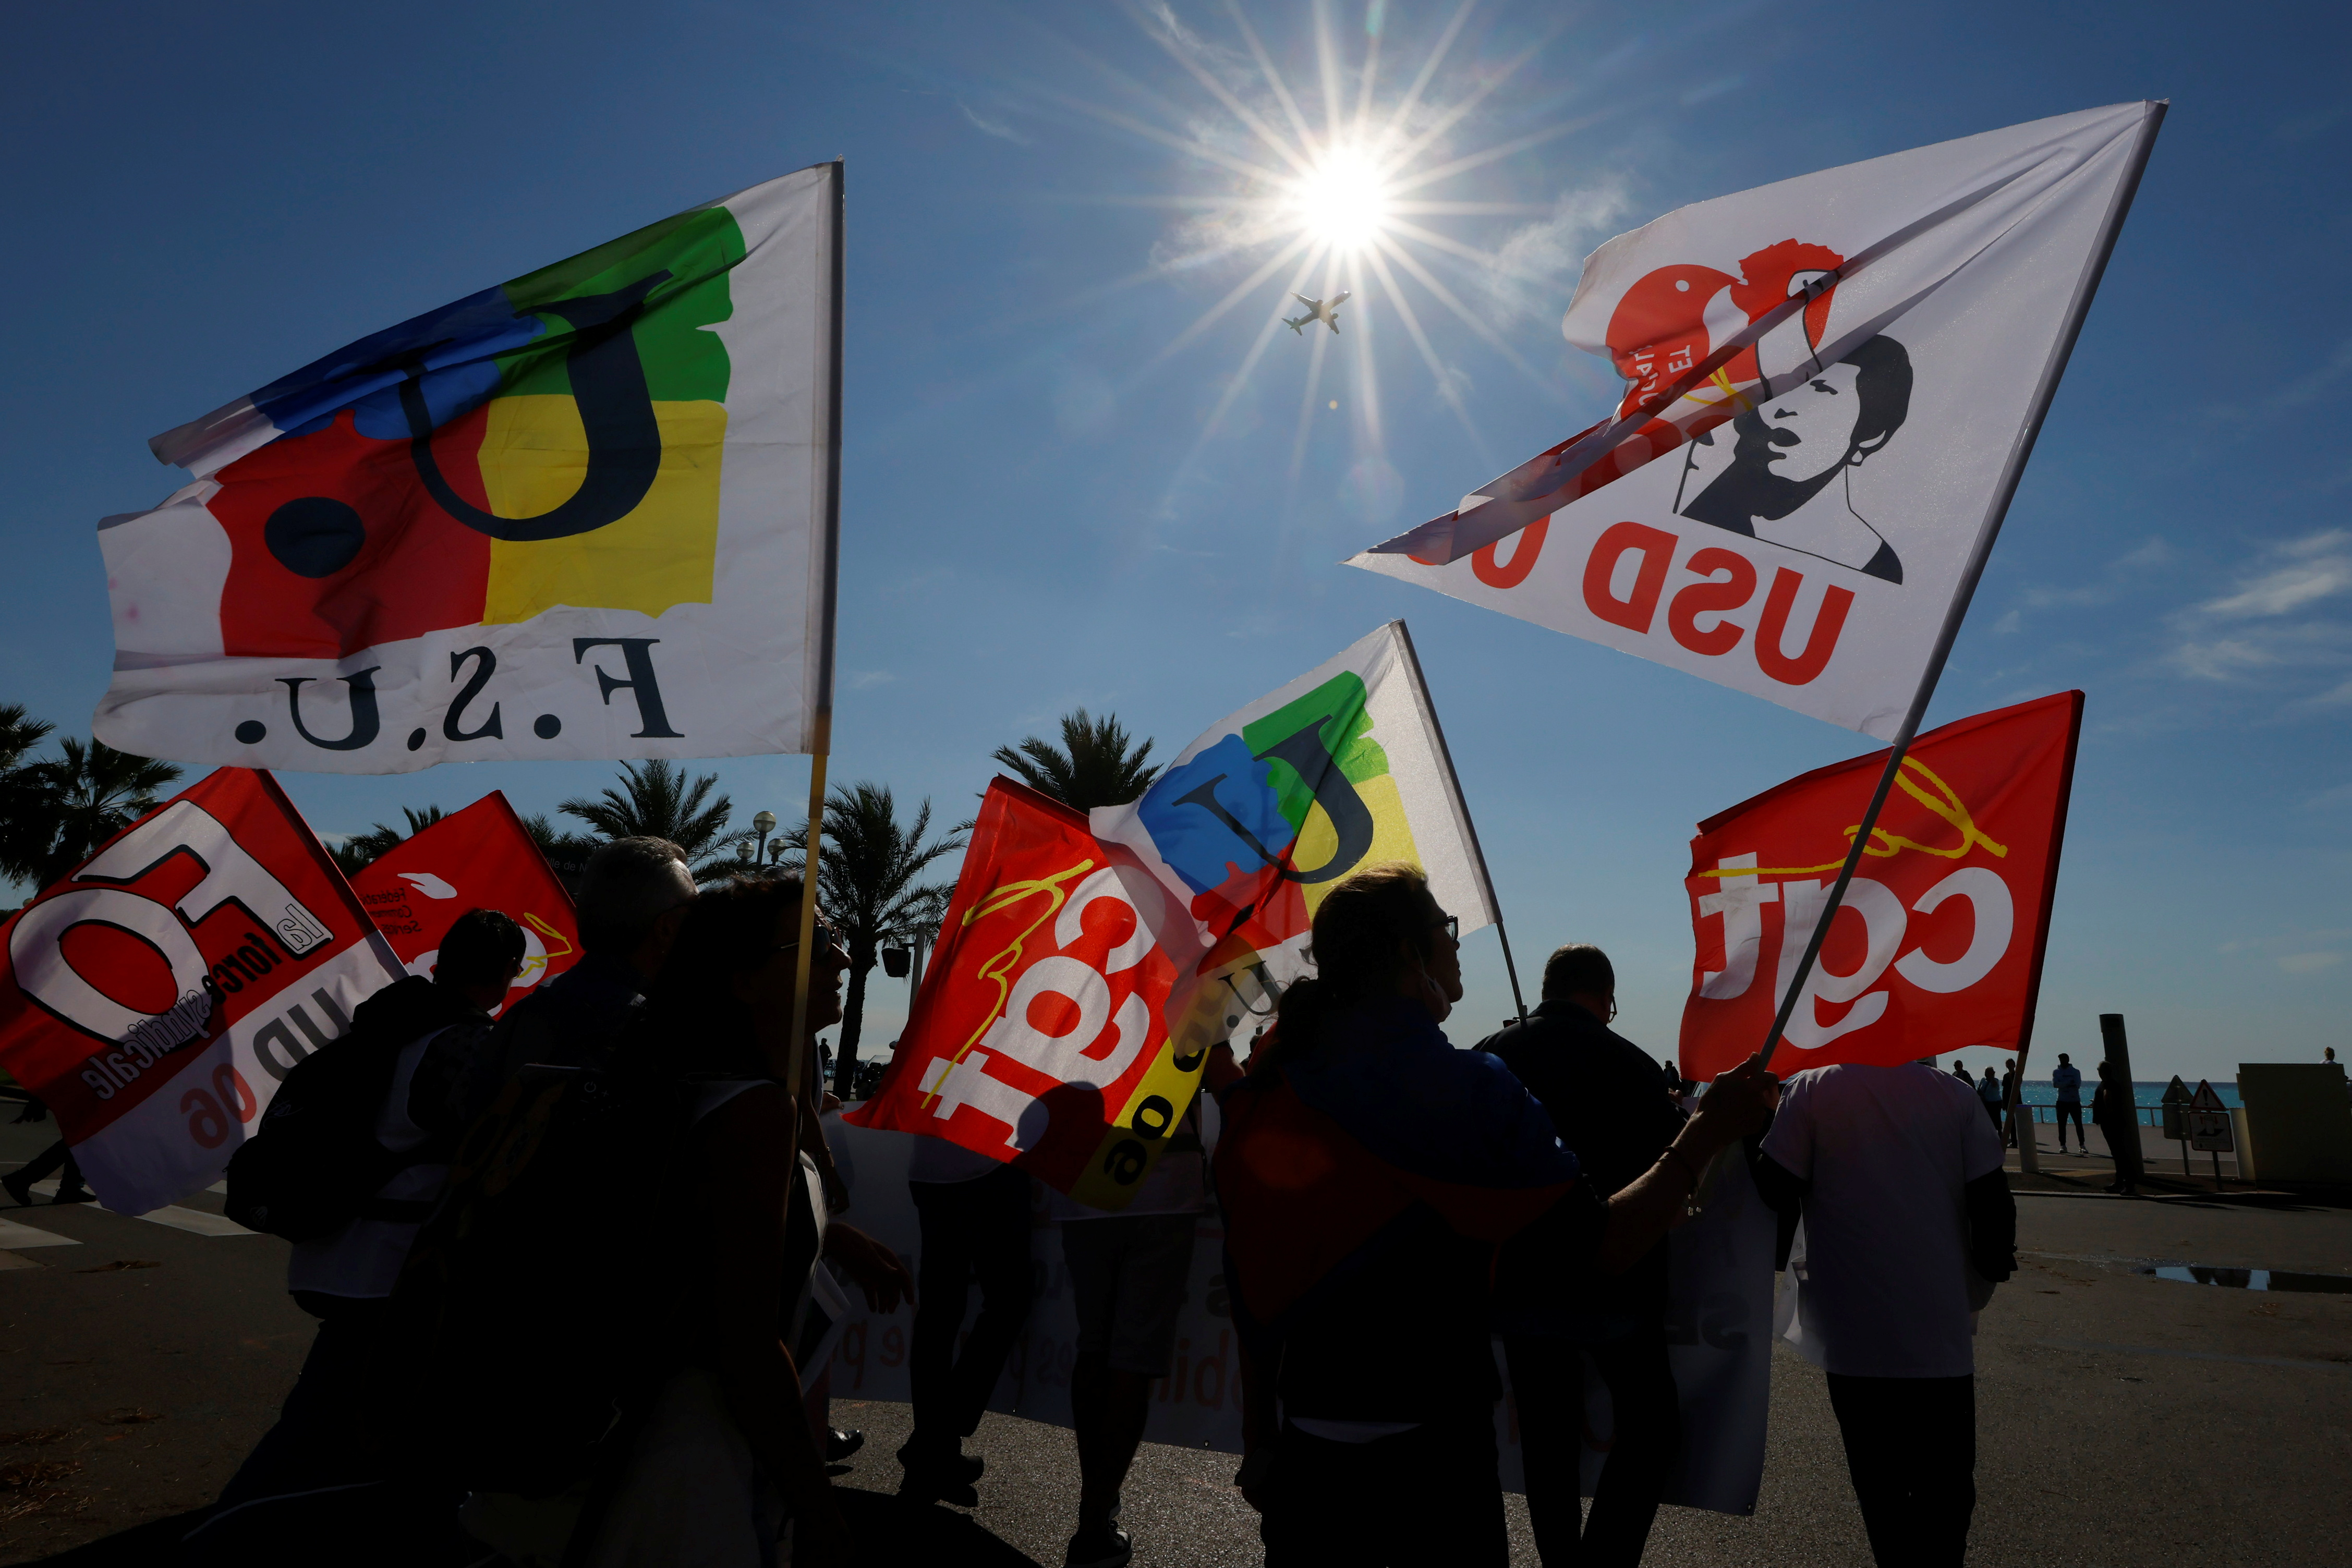 Protestors hold CGT labour union, Force Ouvriere (FO) labour union and  Federation Syndicale Unitaire (FSU) union flags during a demonstration in Nice as part of a day of strikes and protests against French government's economic and social policies, France, October 5, 2021.   REUTERS/Eric Gaillard